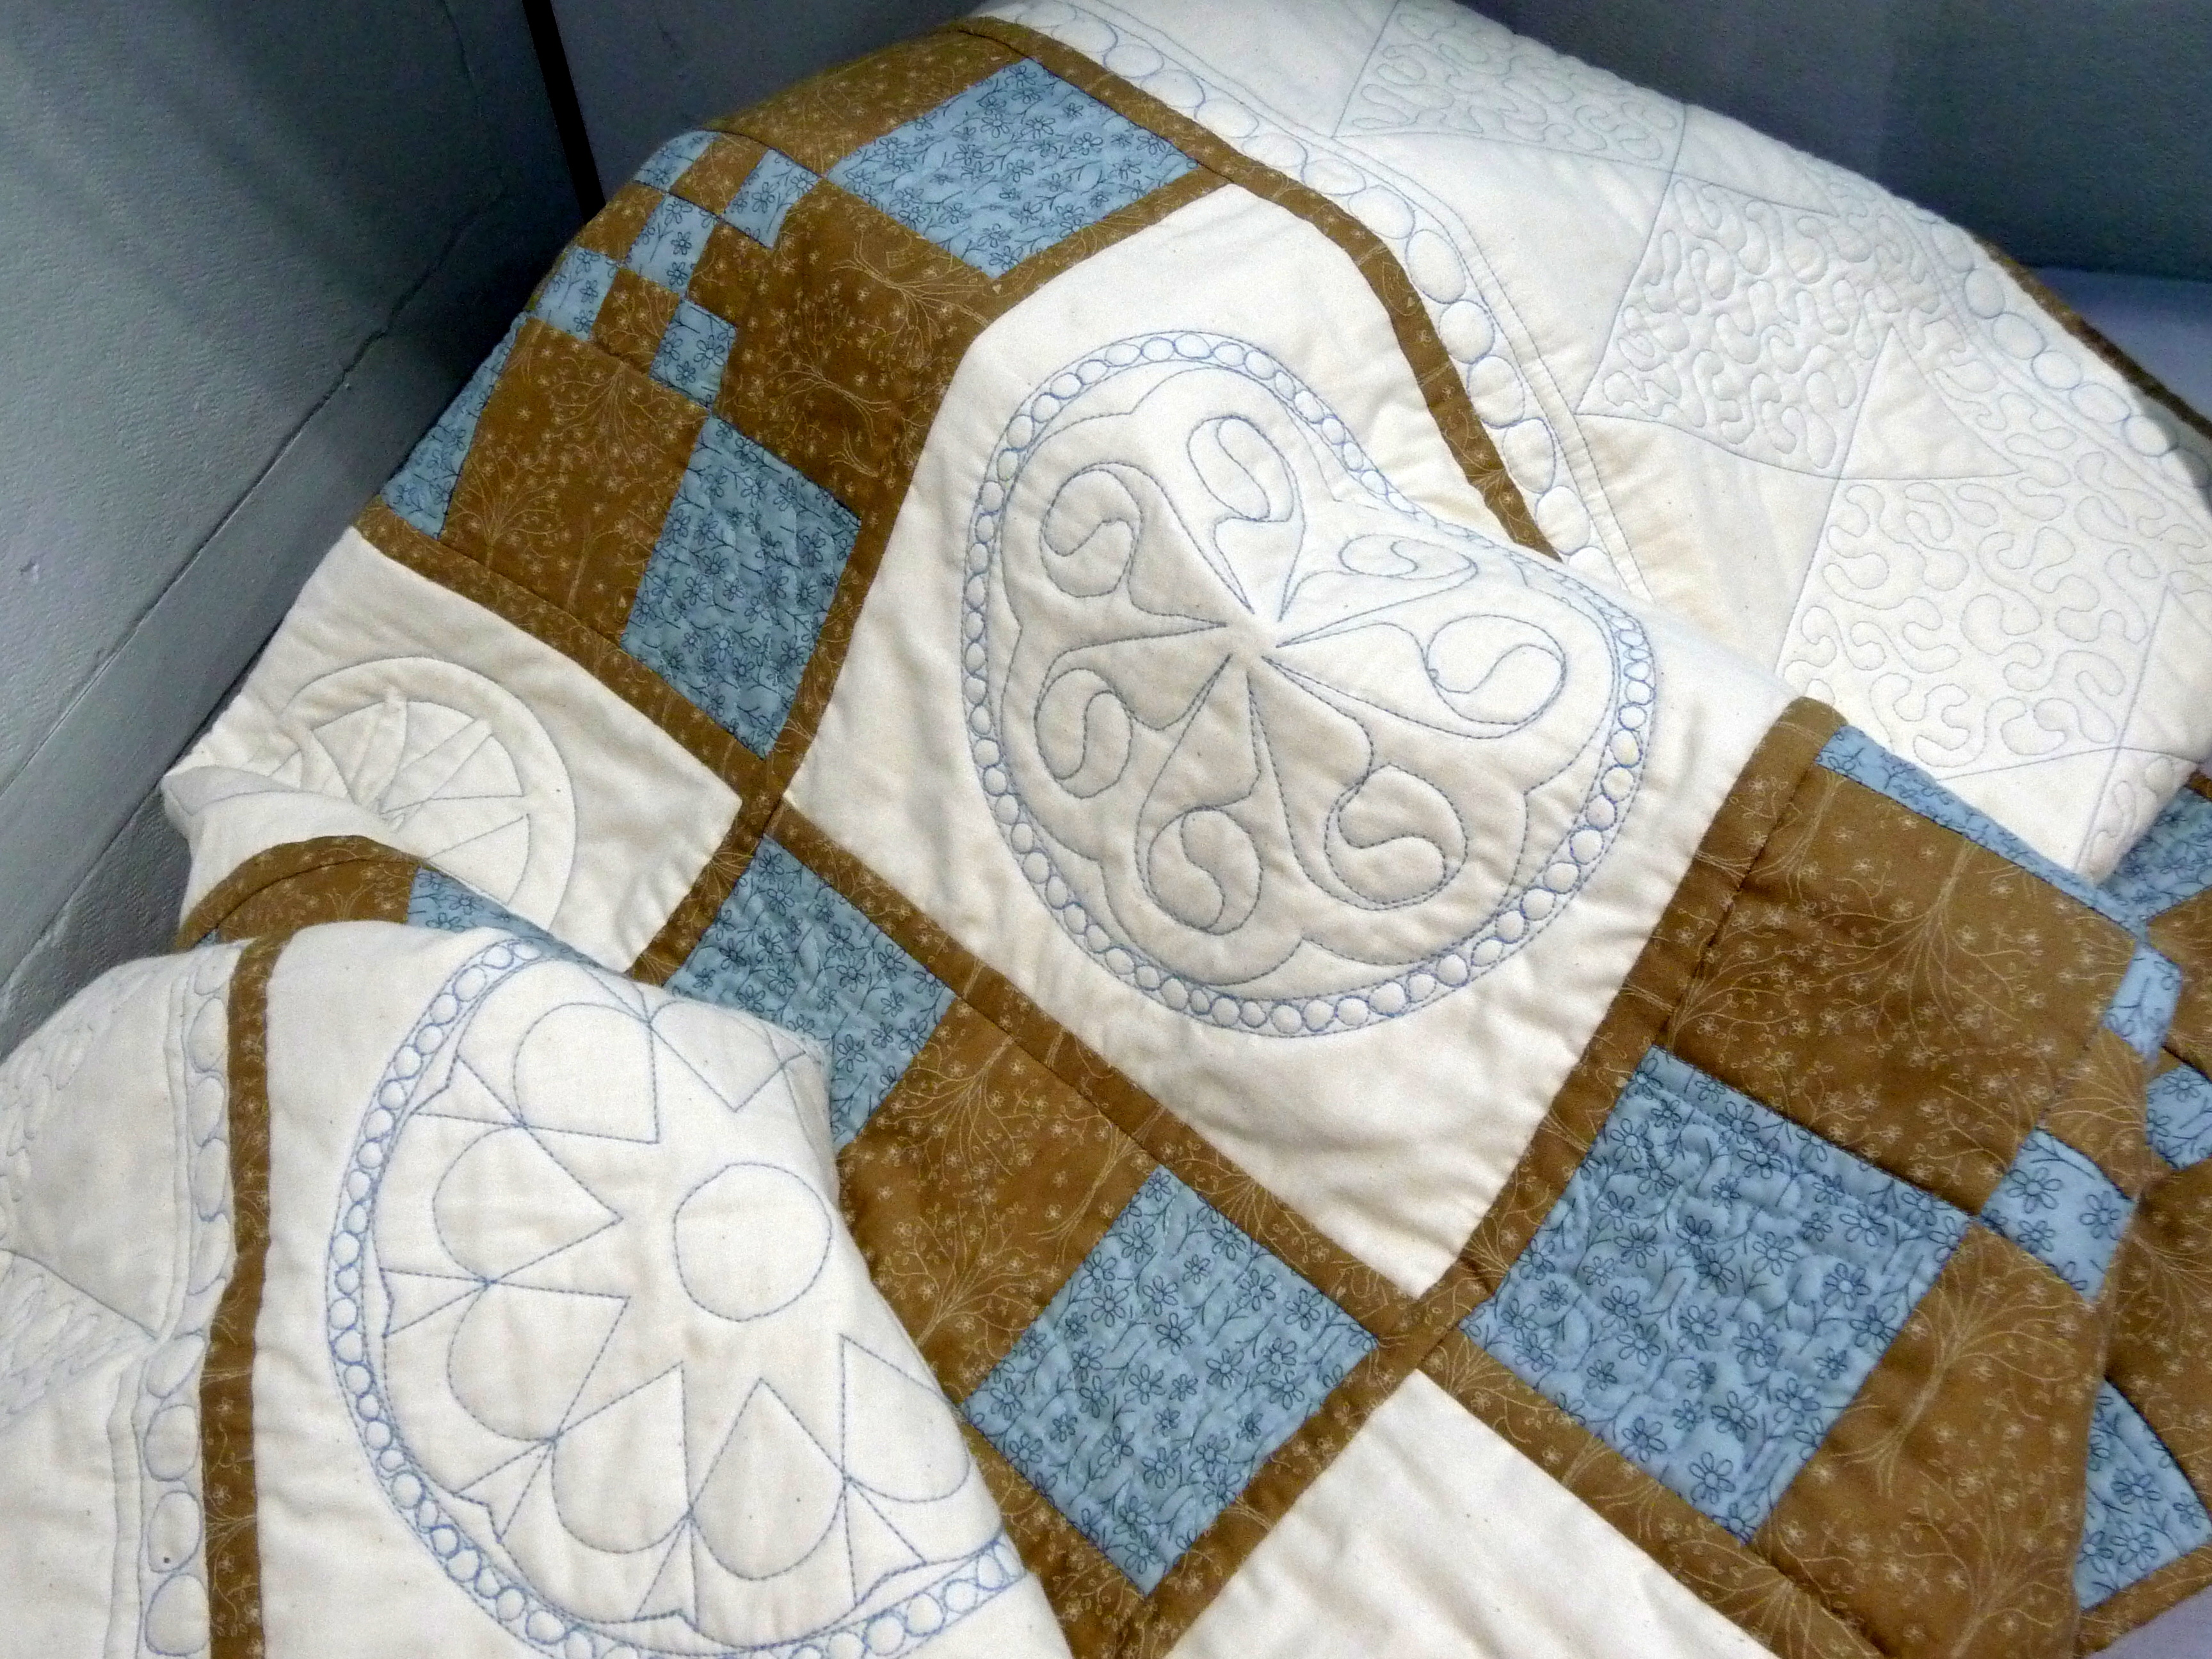 QUILT by Janine Jones, machine stitched and quilted patchwork